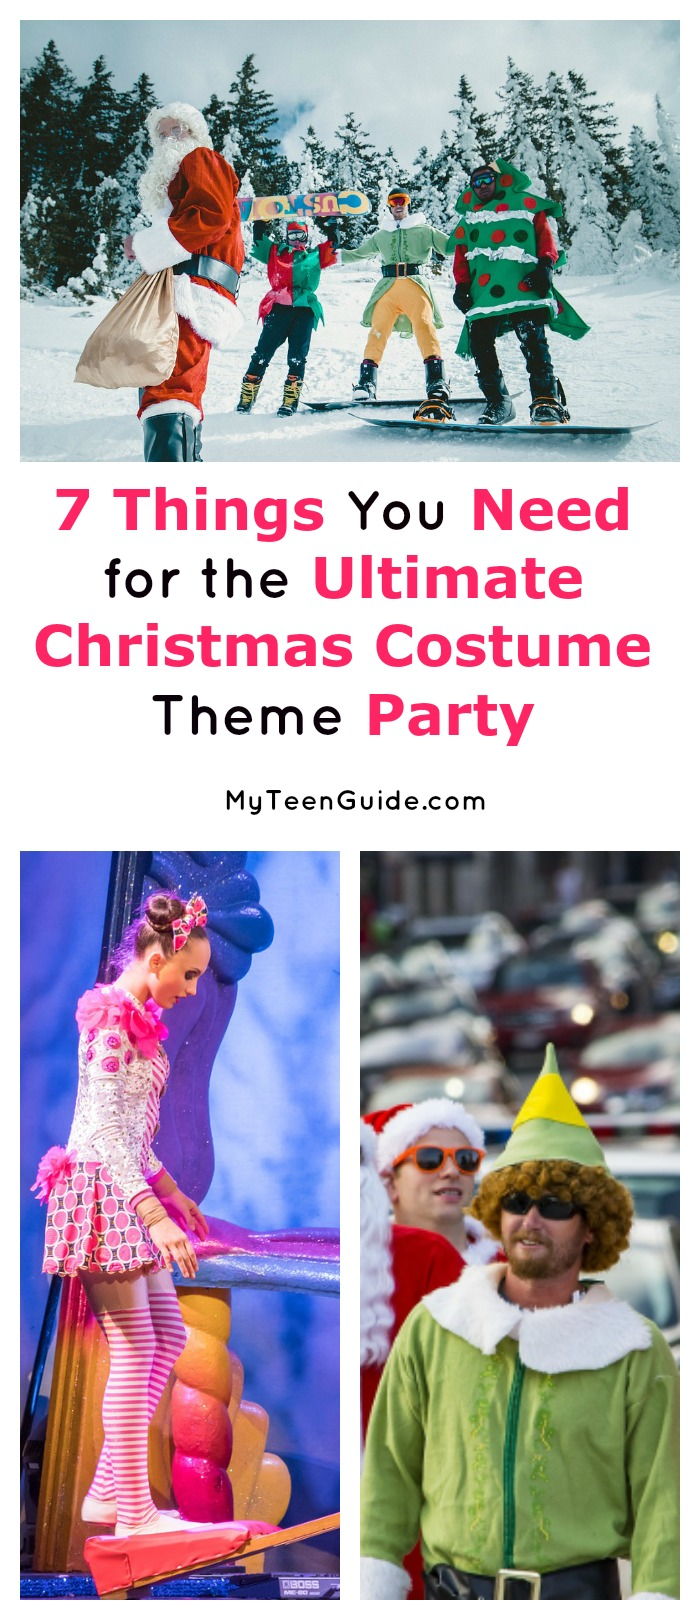 Thinking about throwing a holiday party but can't quite decide on a theme? Check out these Christmas costume theme party ideas for inspiration! From food to fun, we've got you covered.